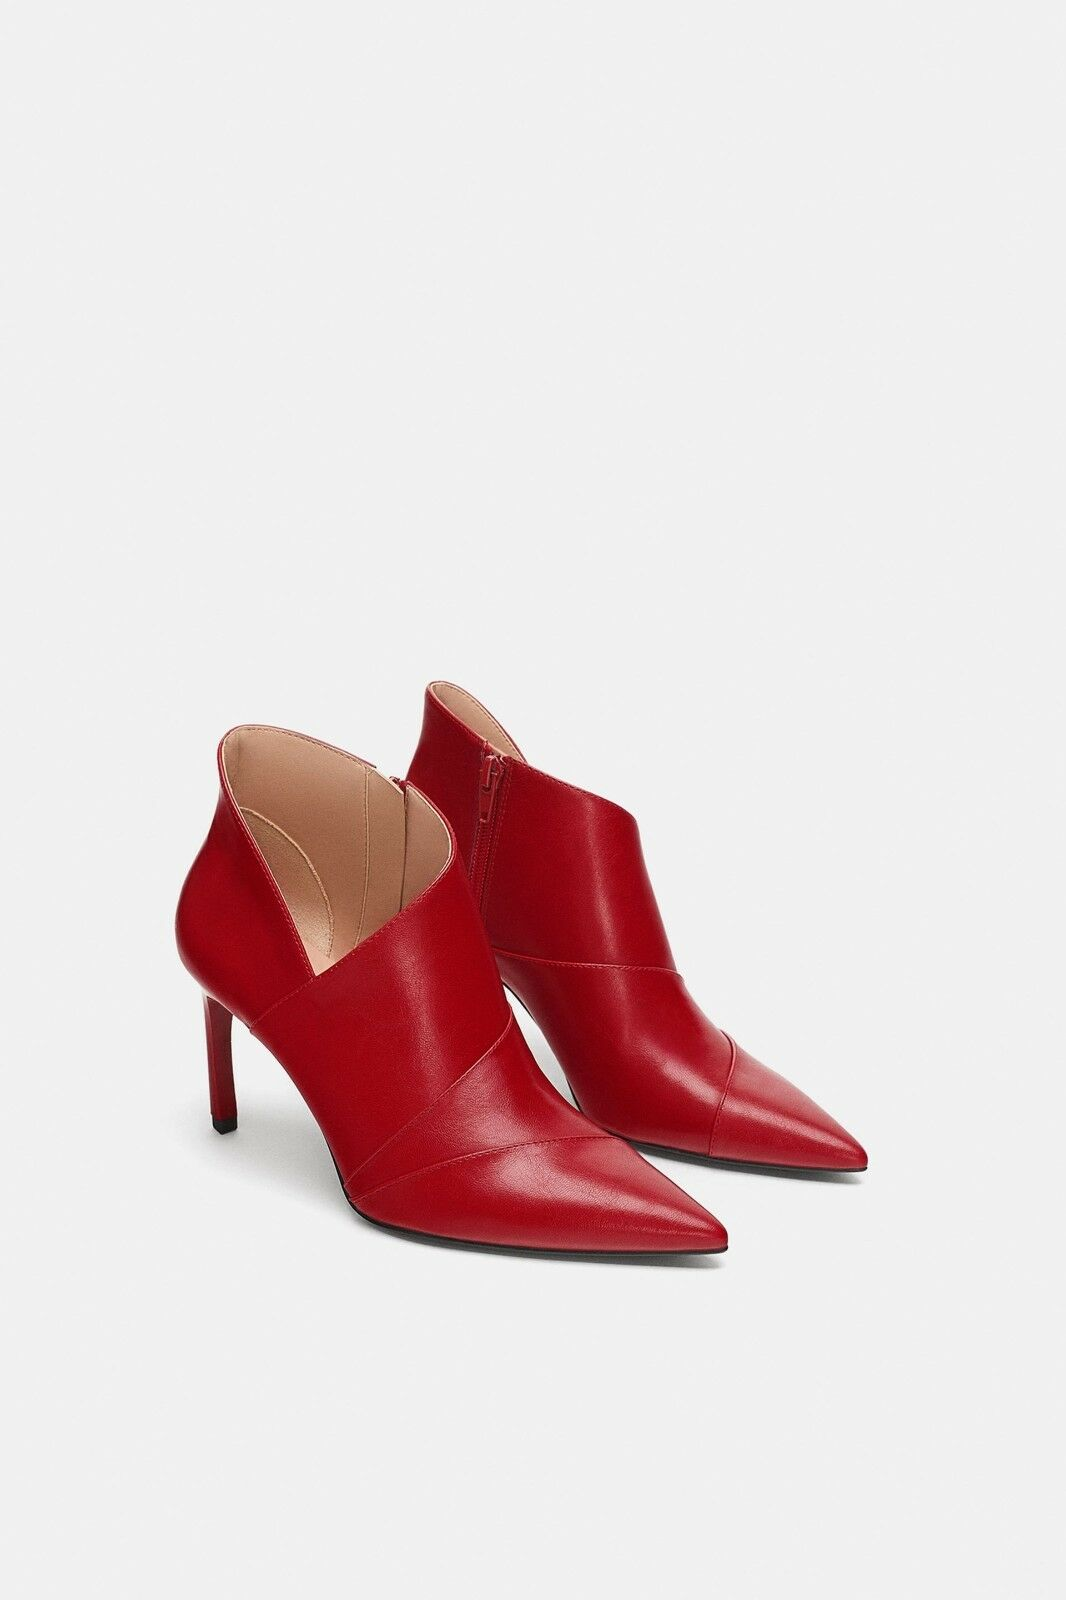 ZARA WITH NEW AW18 ANKLE BOOTS WITH ZARA STILETTO HEEL RED ALL SIZES REF. 7116/301 c53d8c